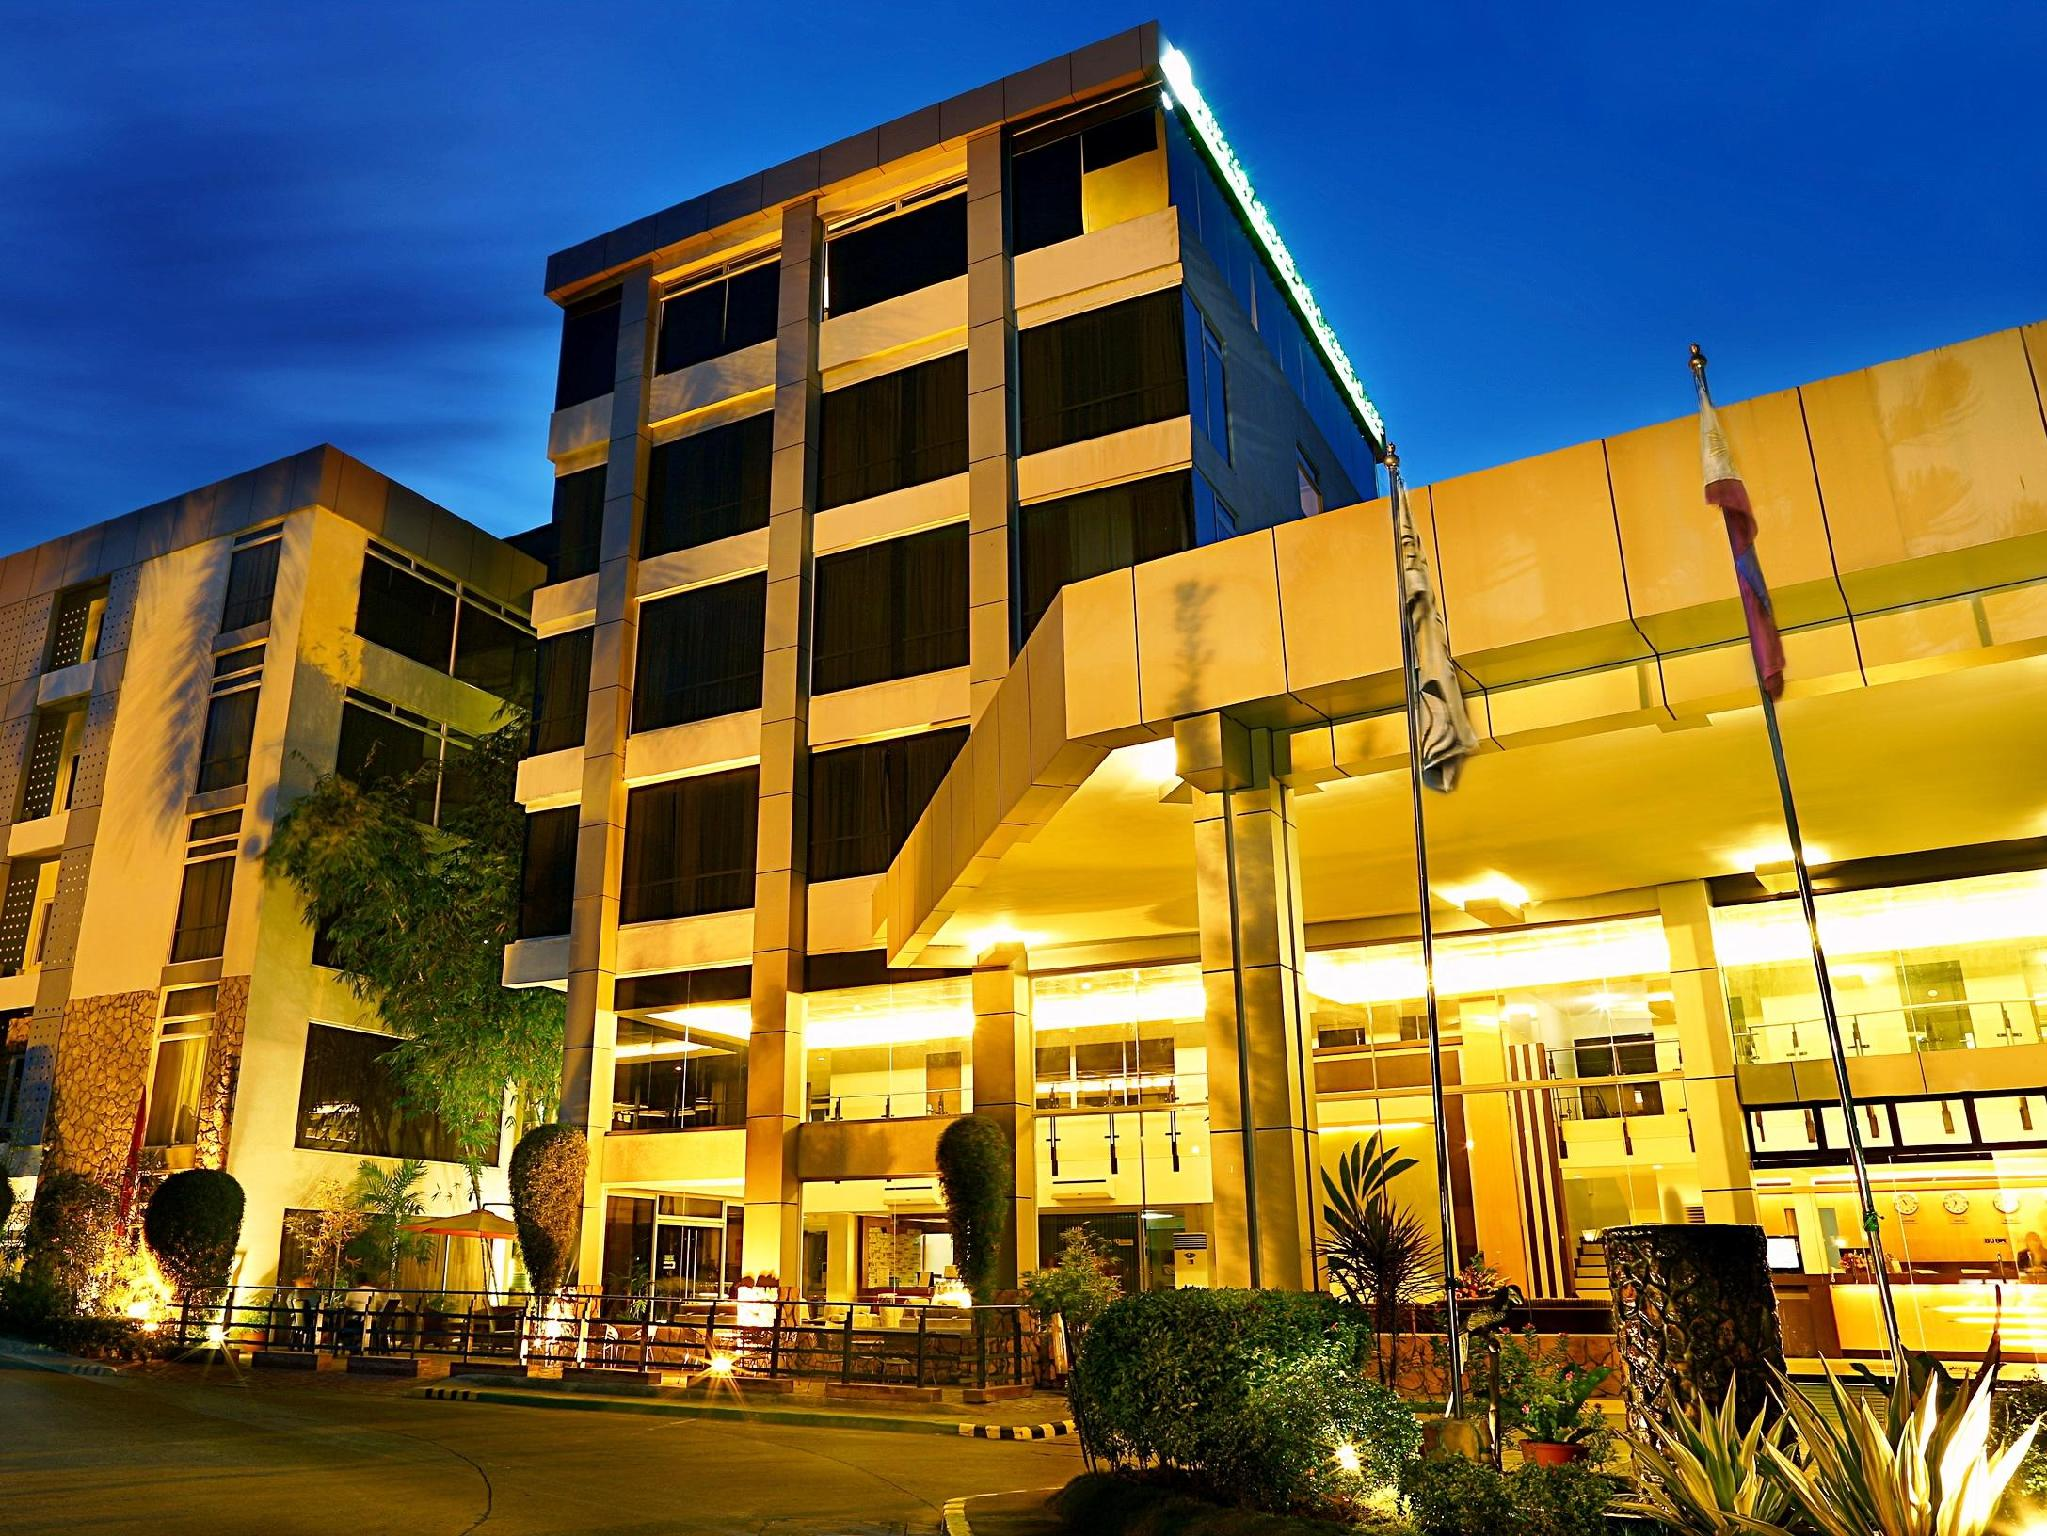 The Ritz Hotel at Garden Oases Davao